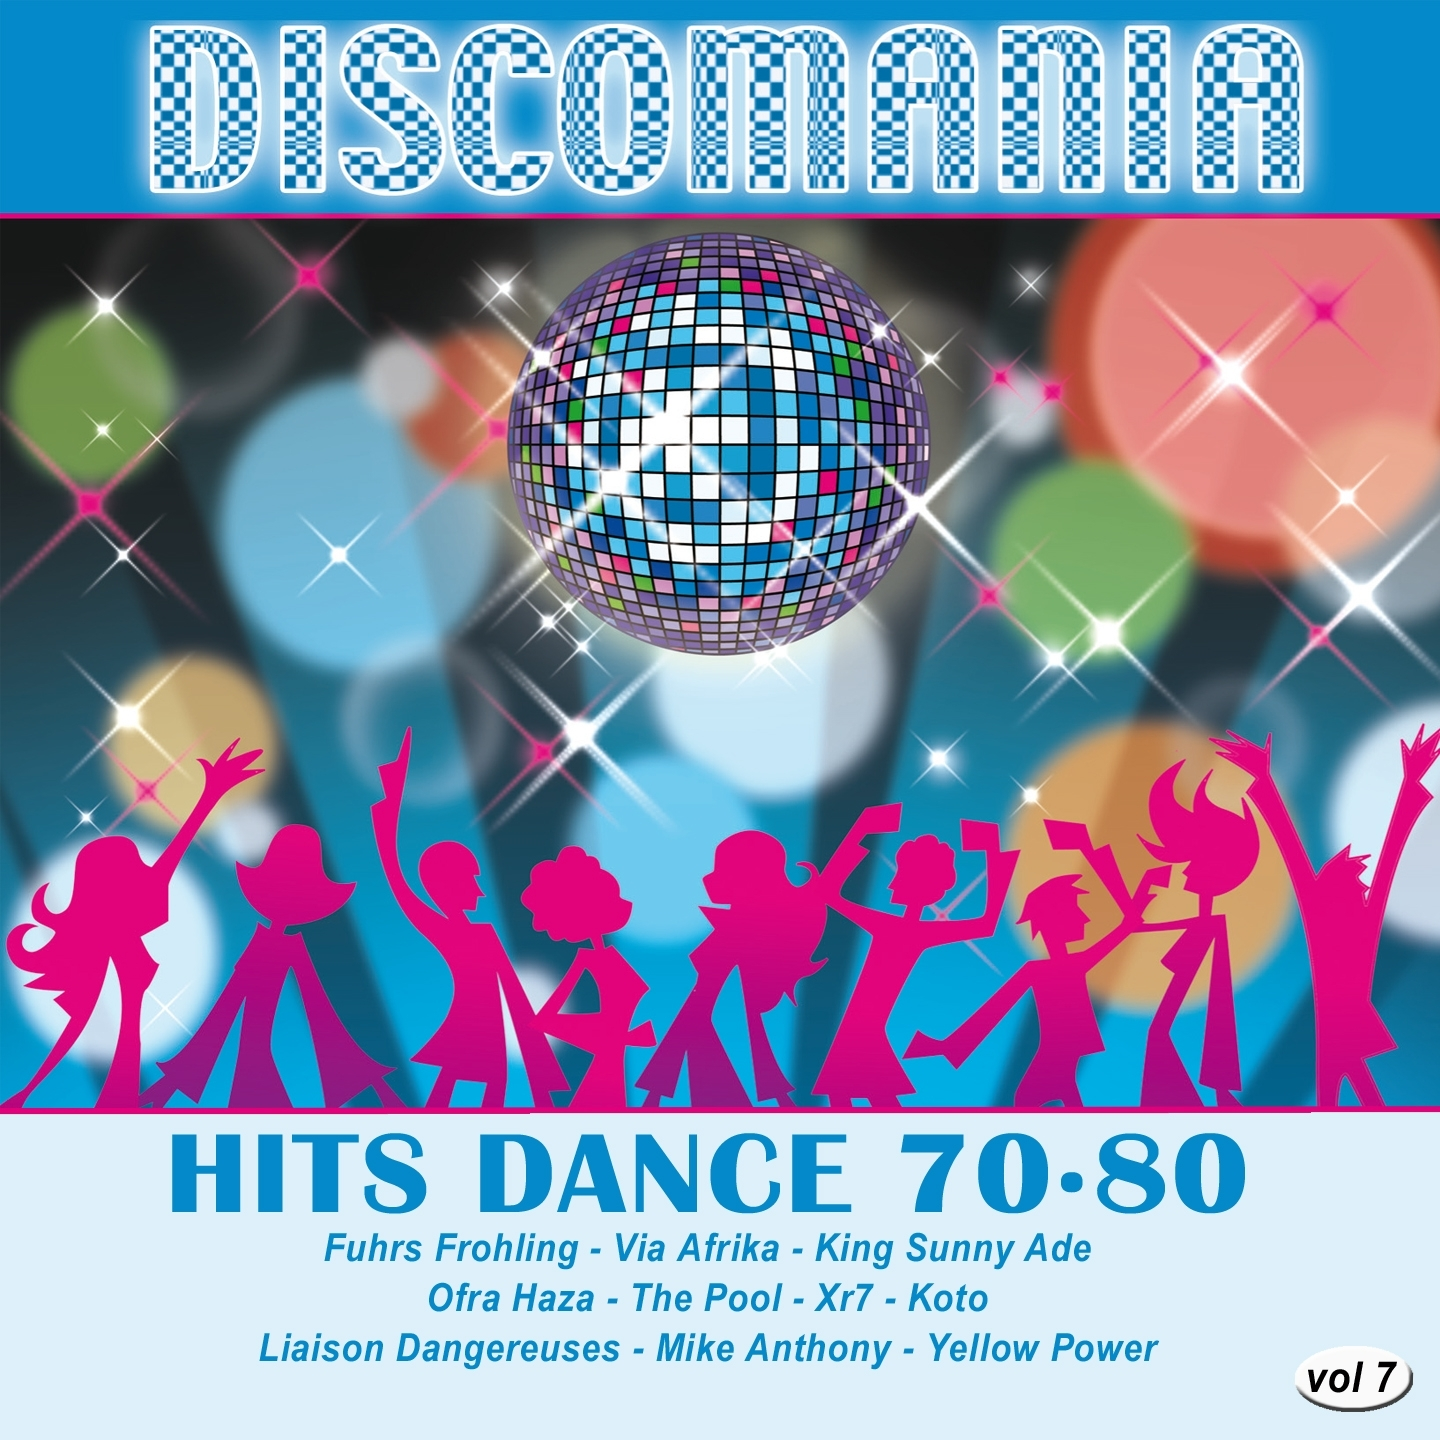 Discomania: Hits Dance 70-80, Vol. 7